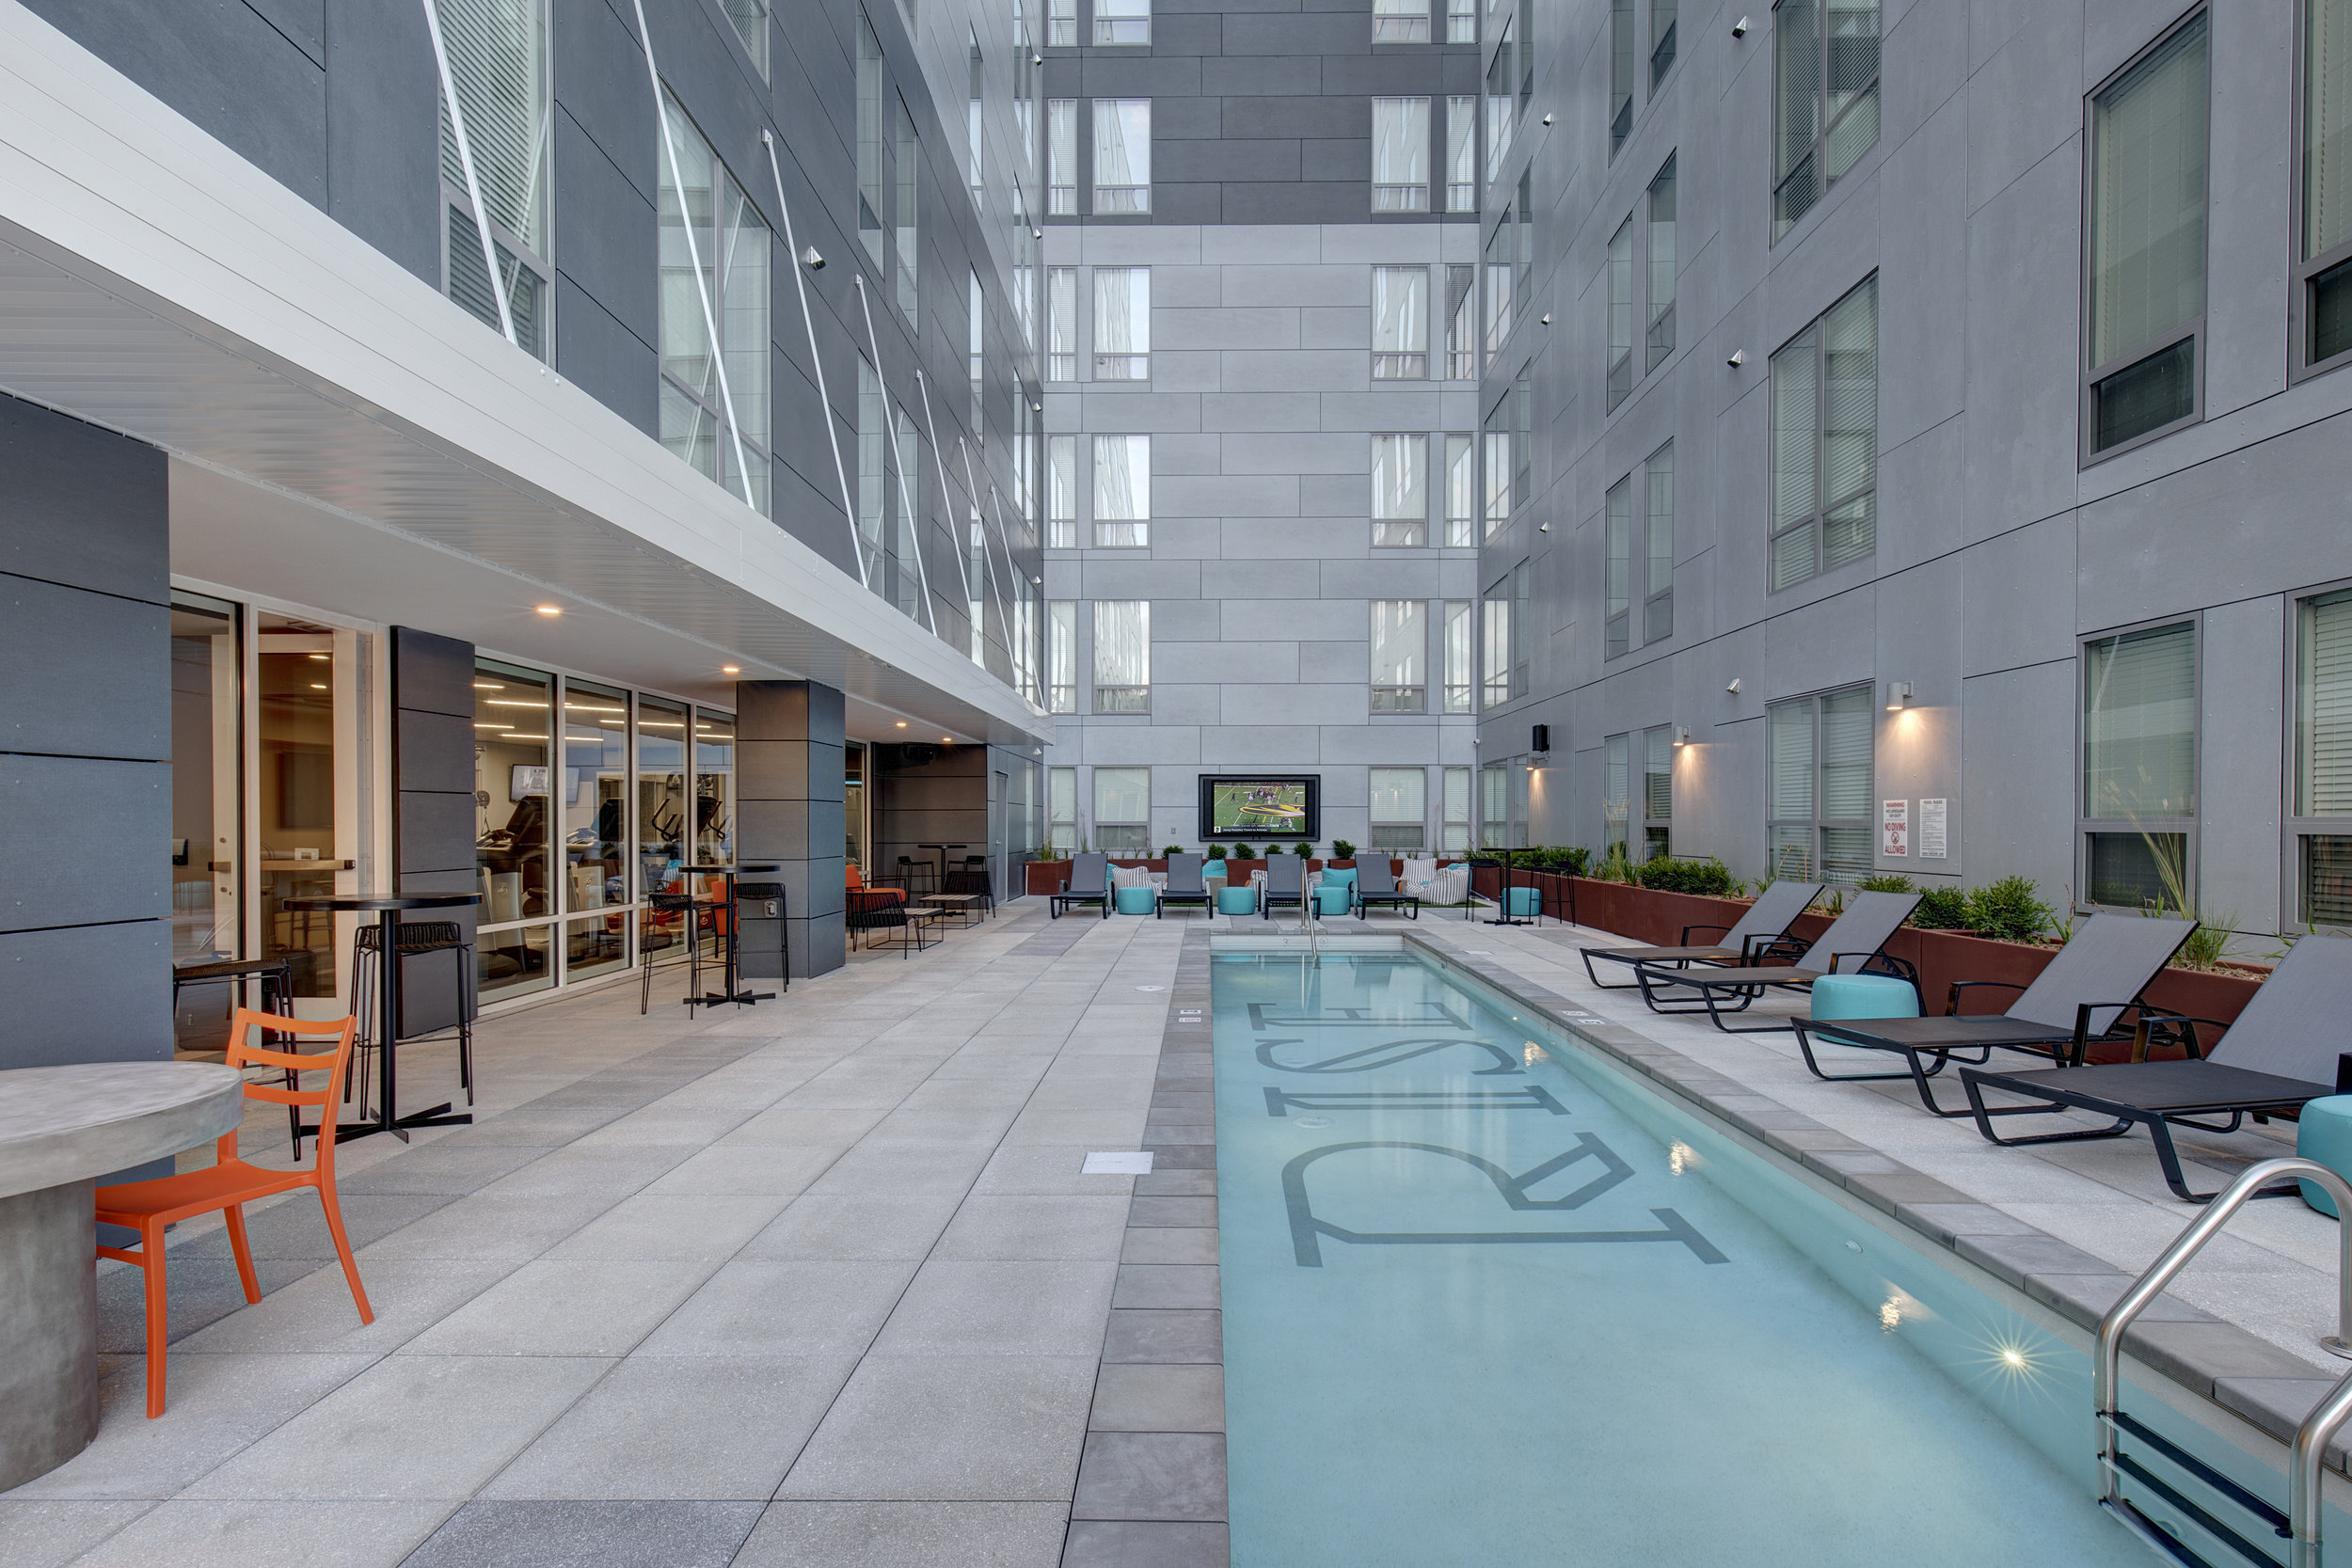 RES_RISE ON 9TH EXTERIOR COURTYARD_POOL.jpg